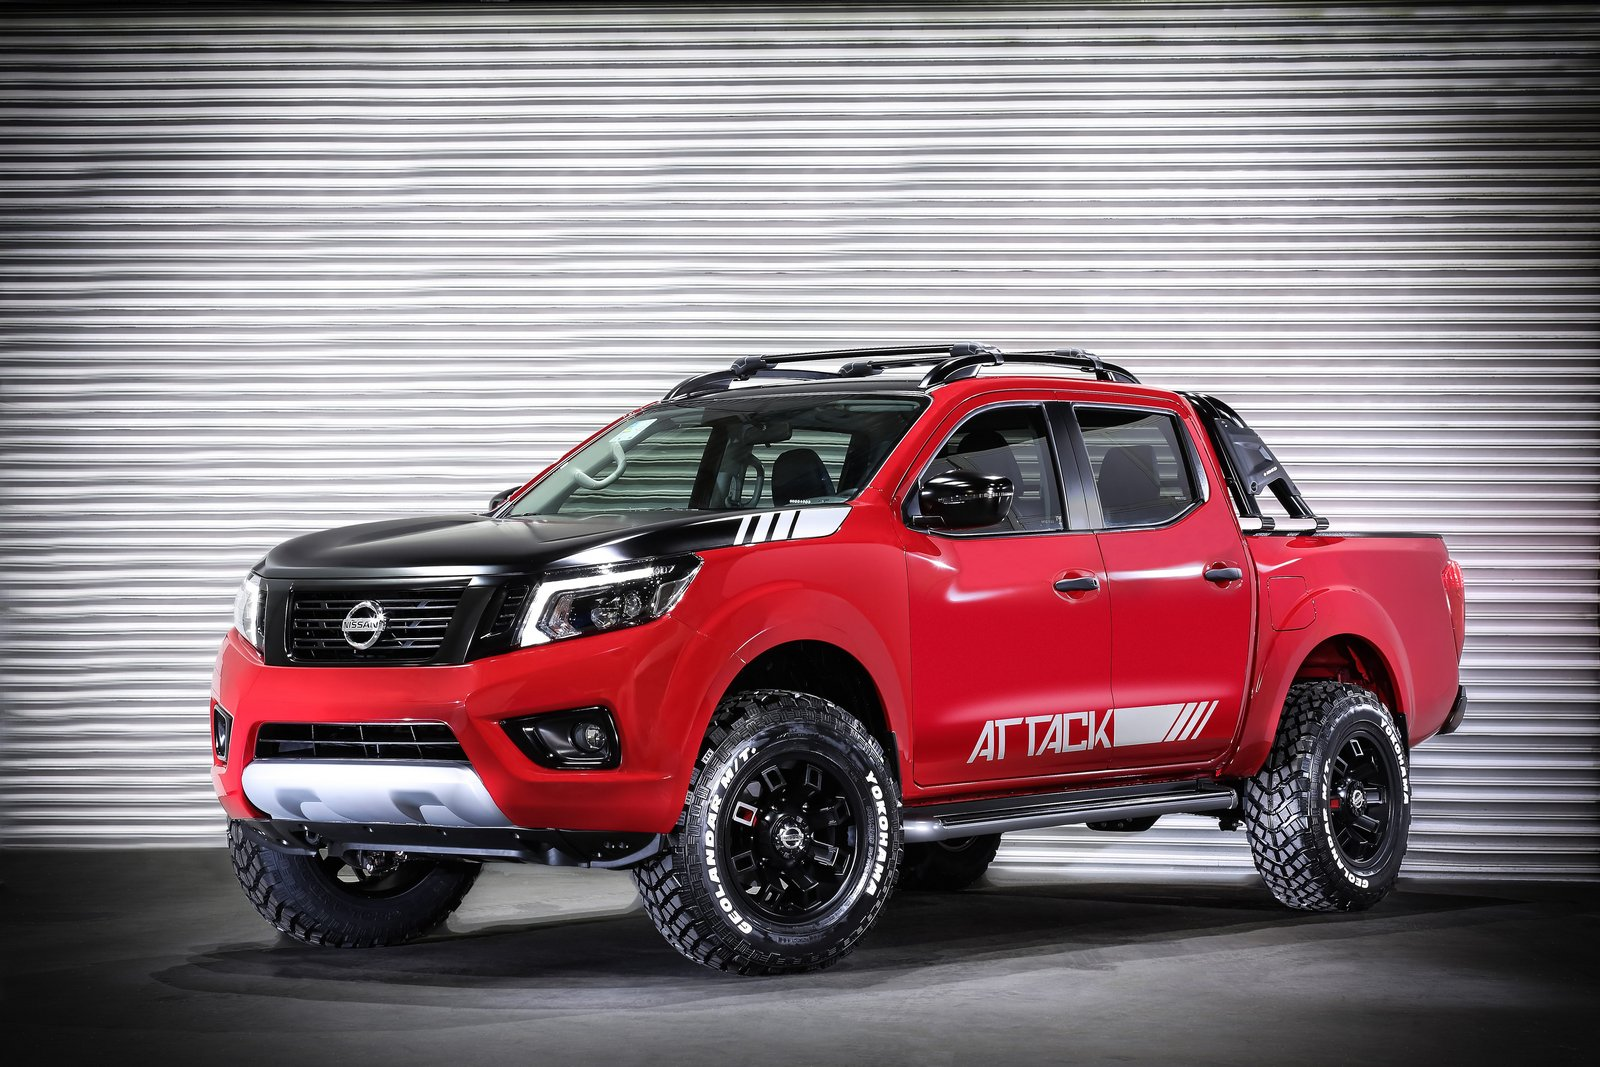 Nissan Frontier Attack Concept Unveiled In Buenos Aires ...